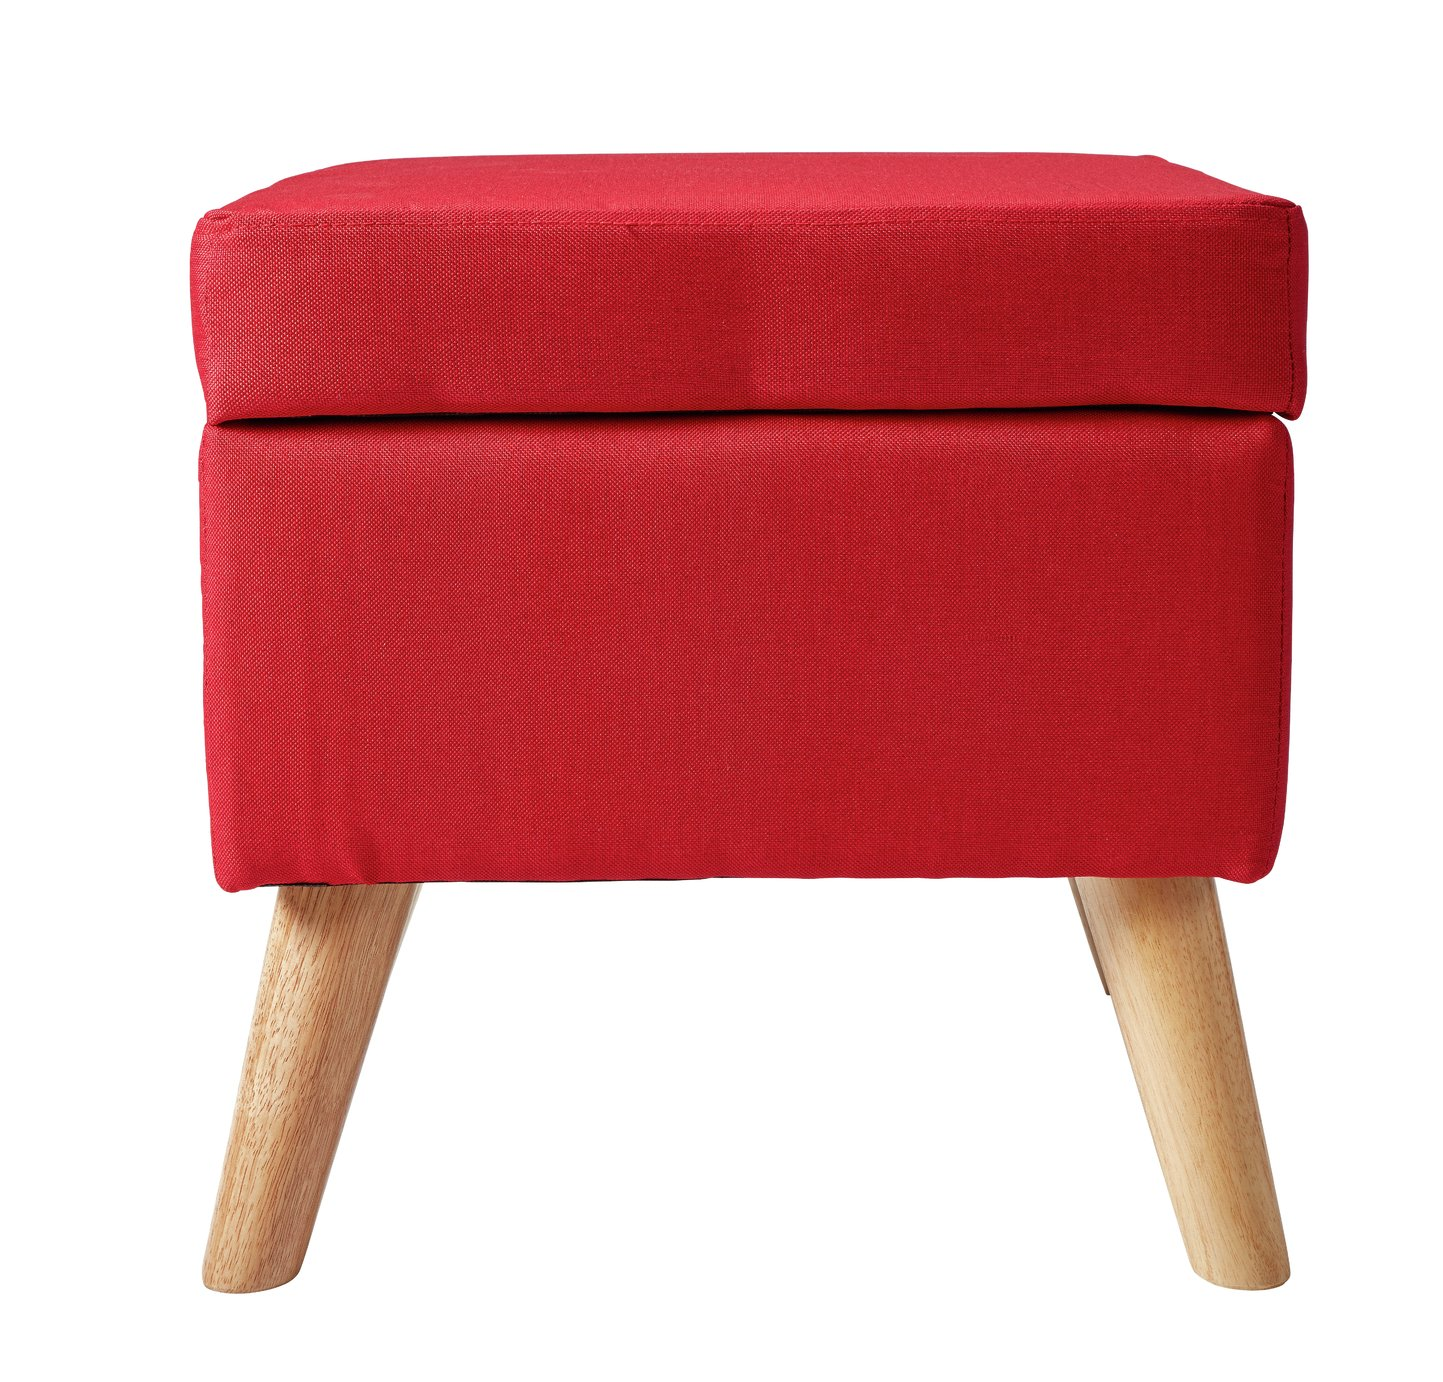 Argos Home Lexie Fabric Storage Footstool - Red